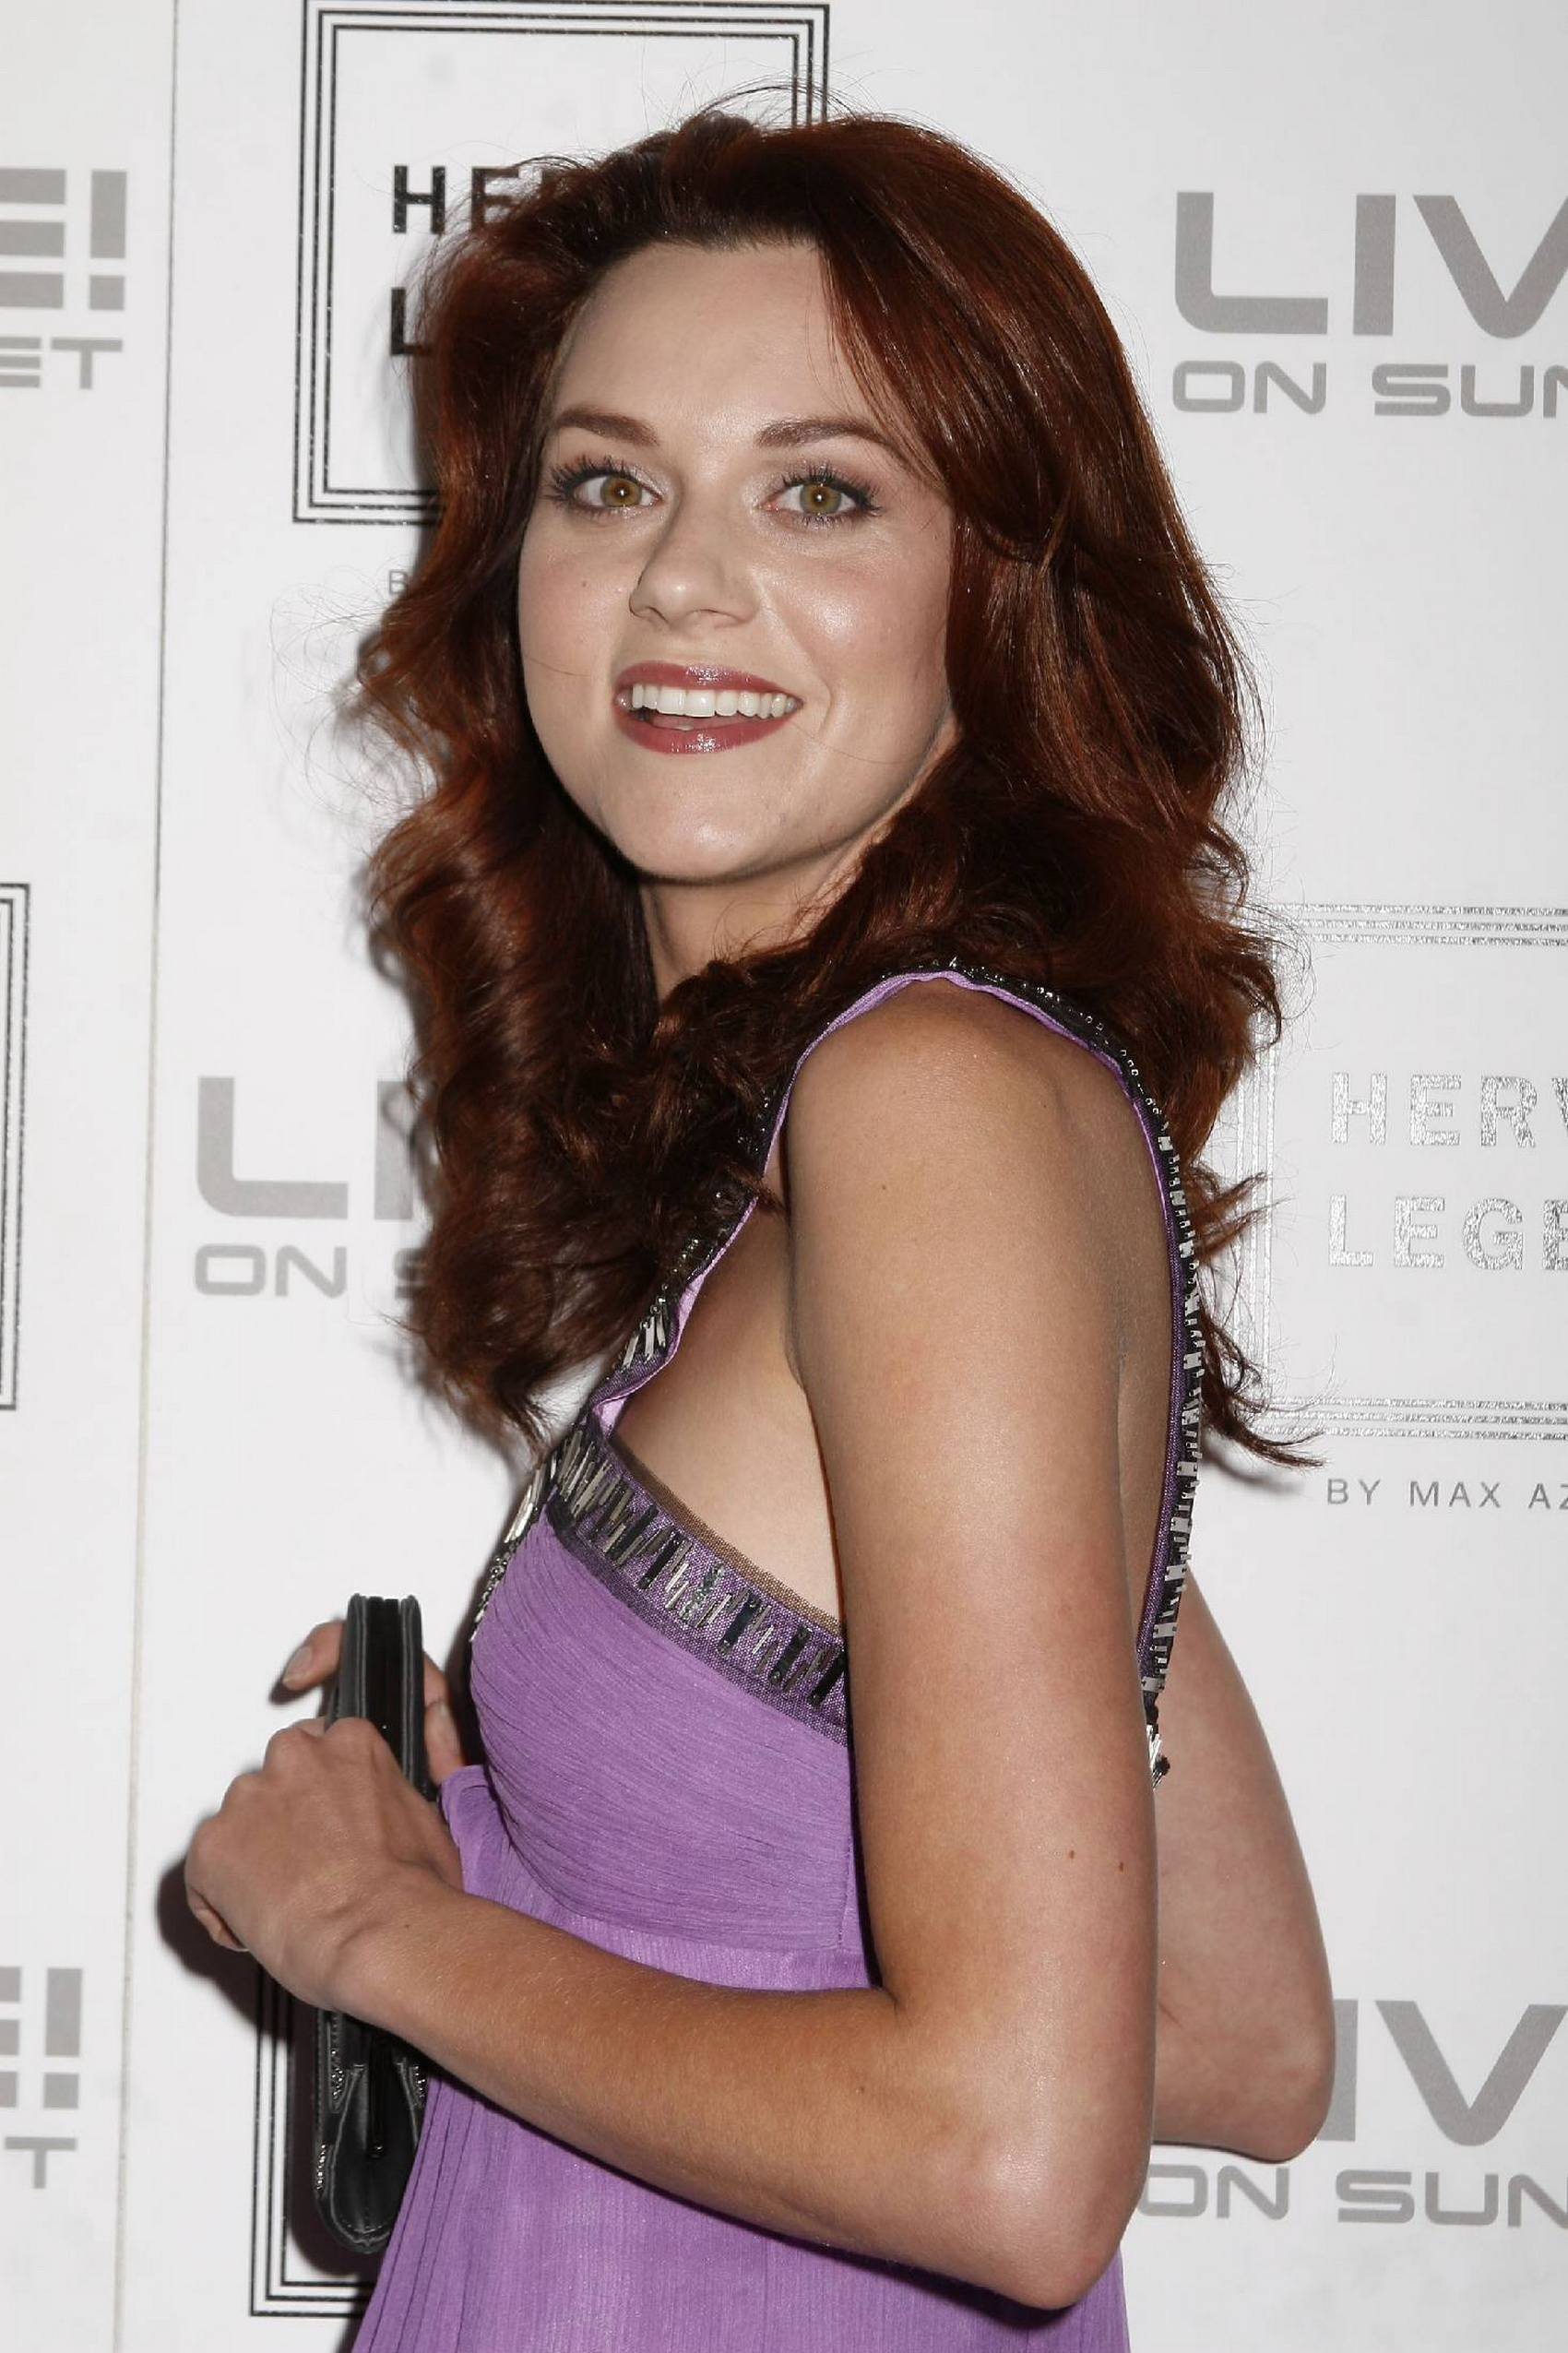 73596_Hilarie_Burton_at_Herve_Leger_by_Max_Azria_Celebration4_122_115lo.jpg